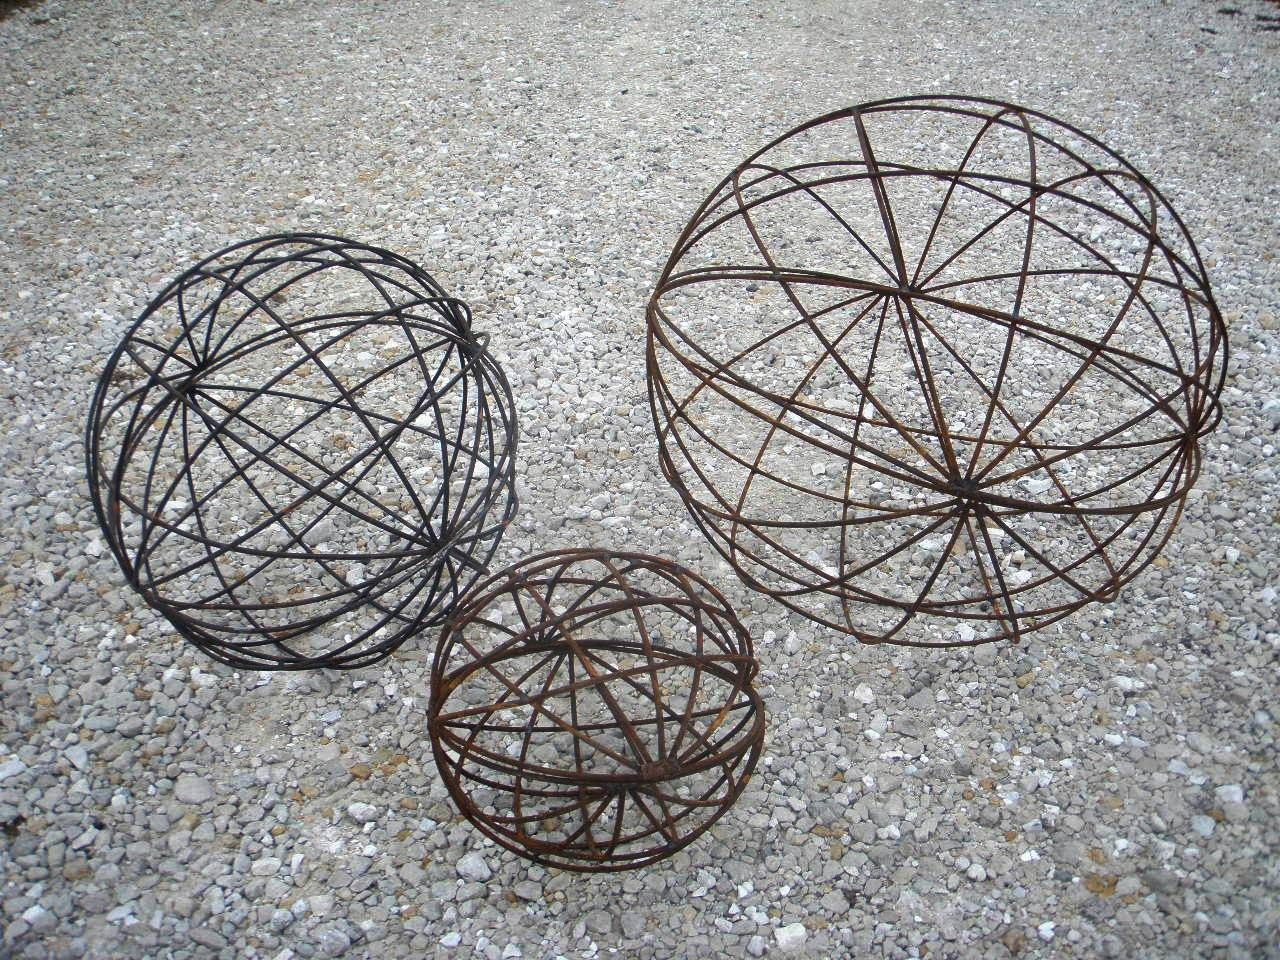 Wrought Iron Garden Art Balls Spheres In Many Sizes Topiaries